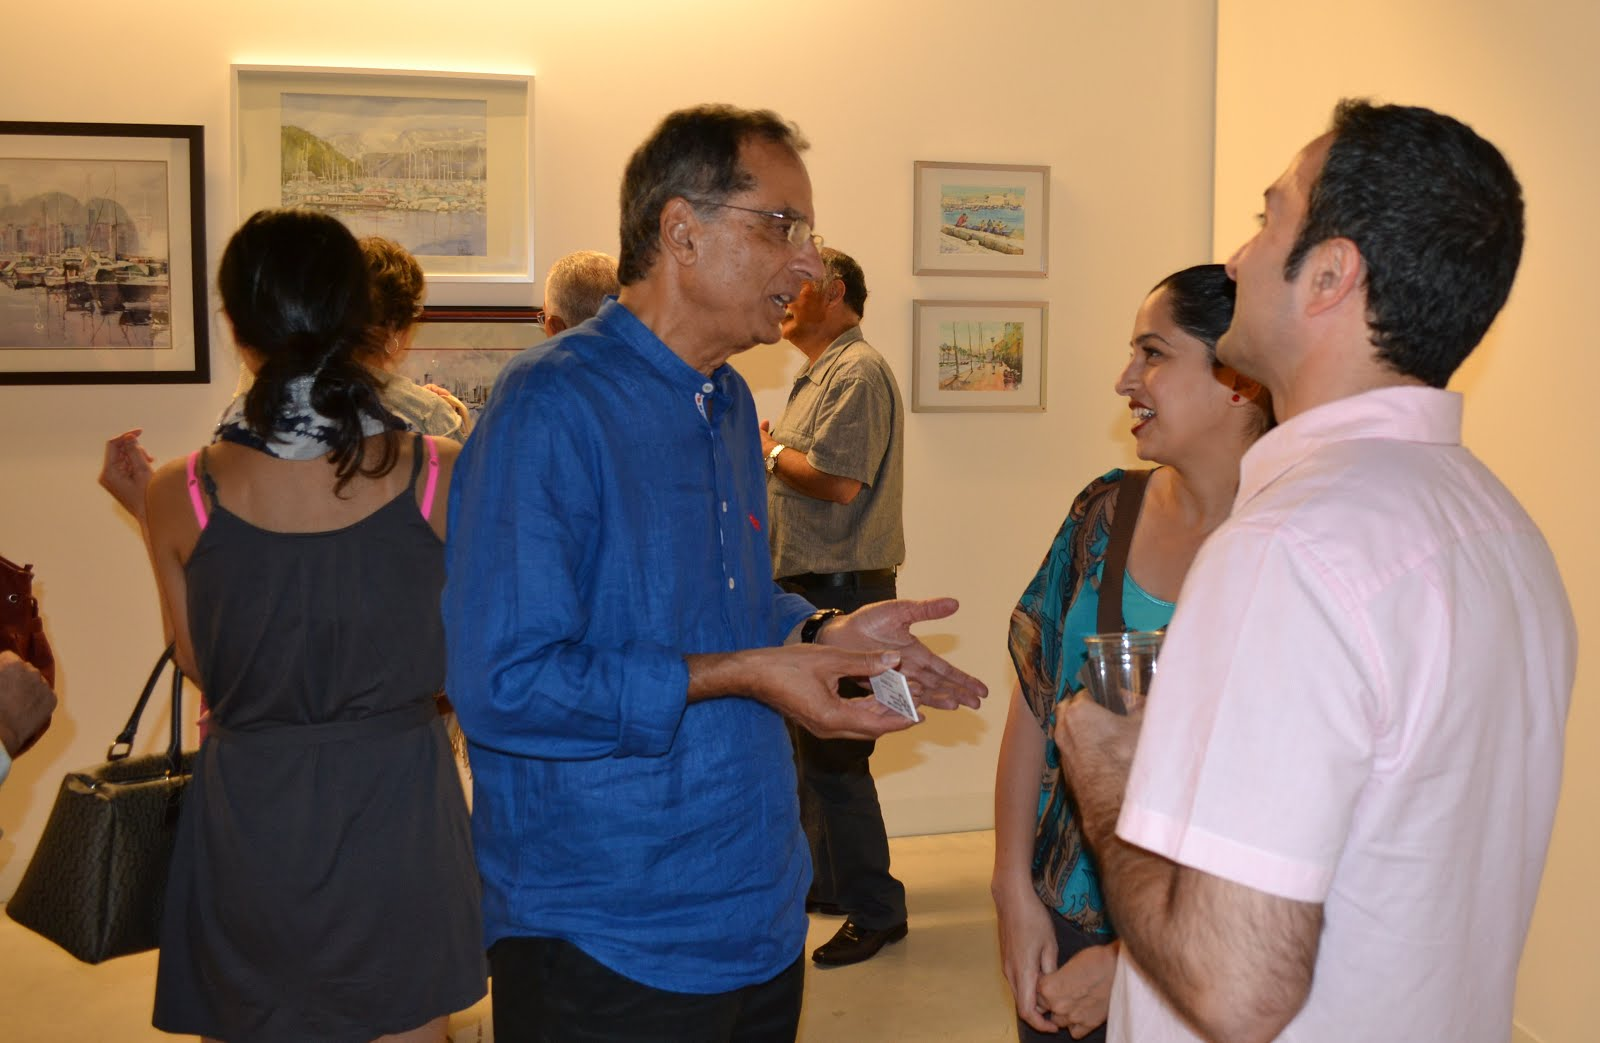 My Exibition at bayview Village, 2013